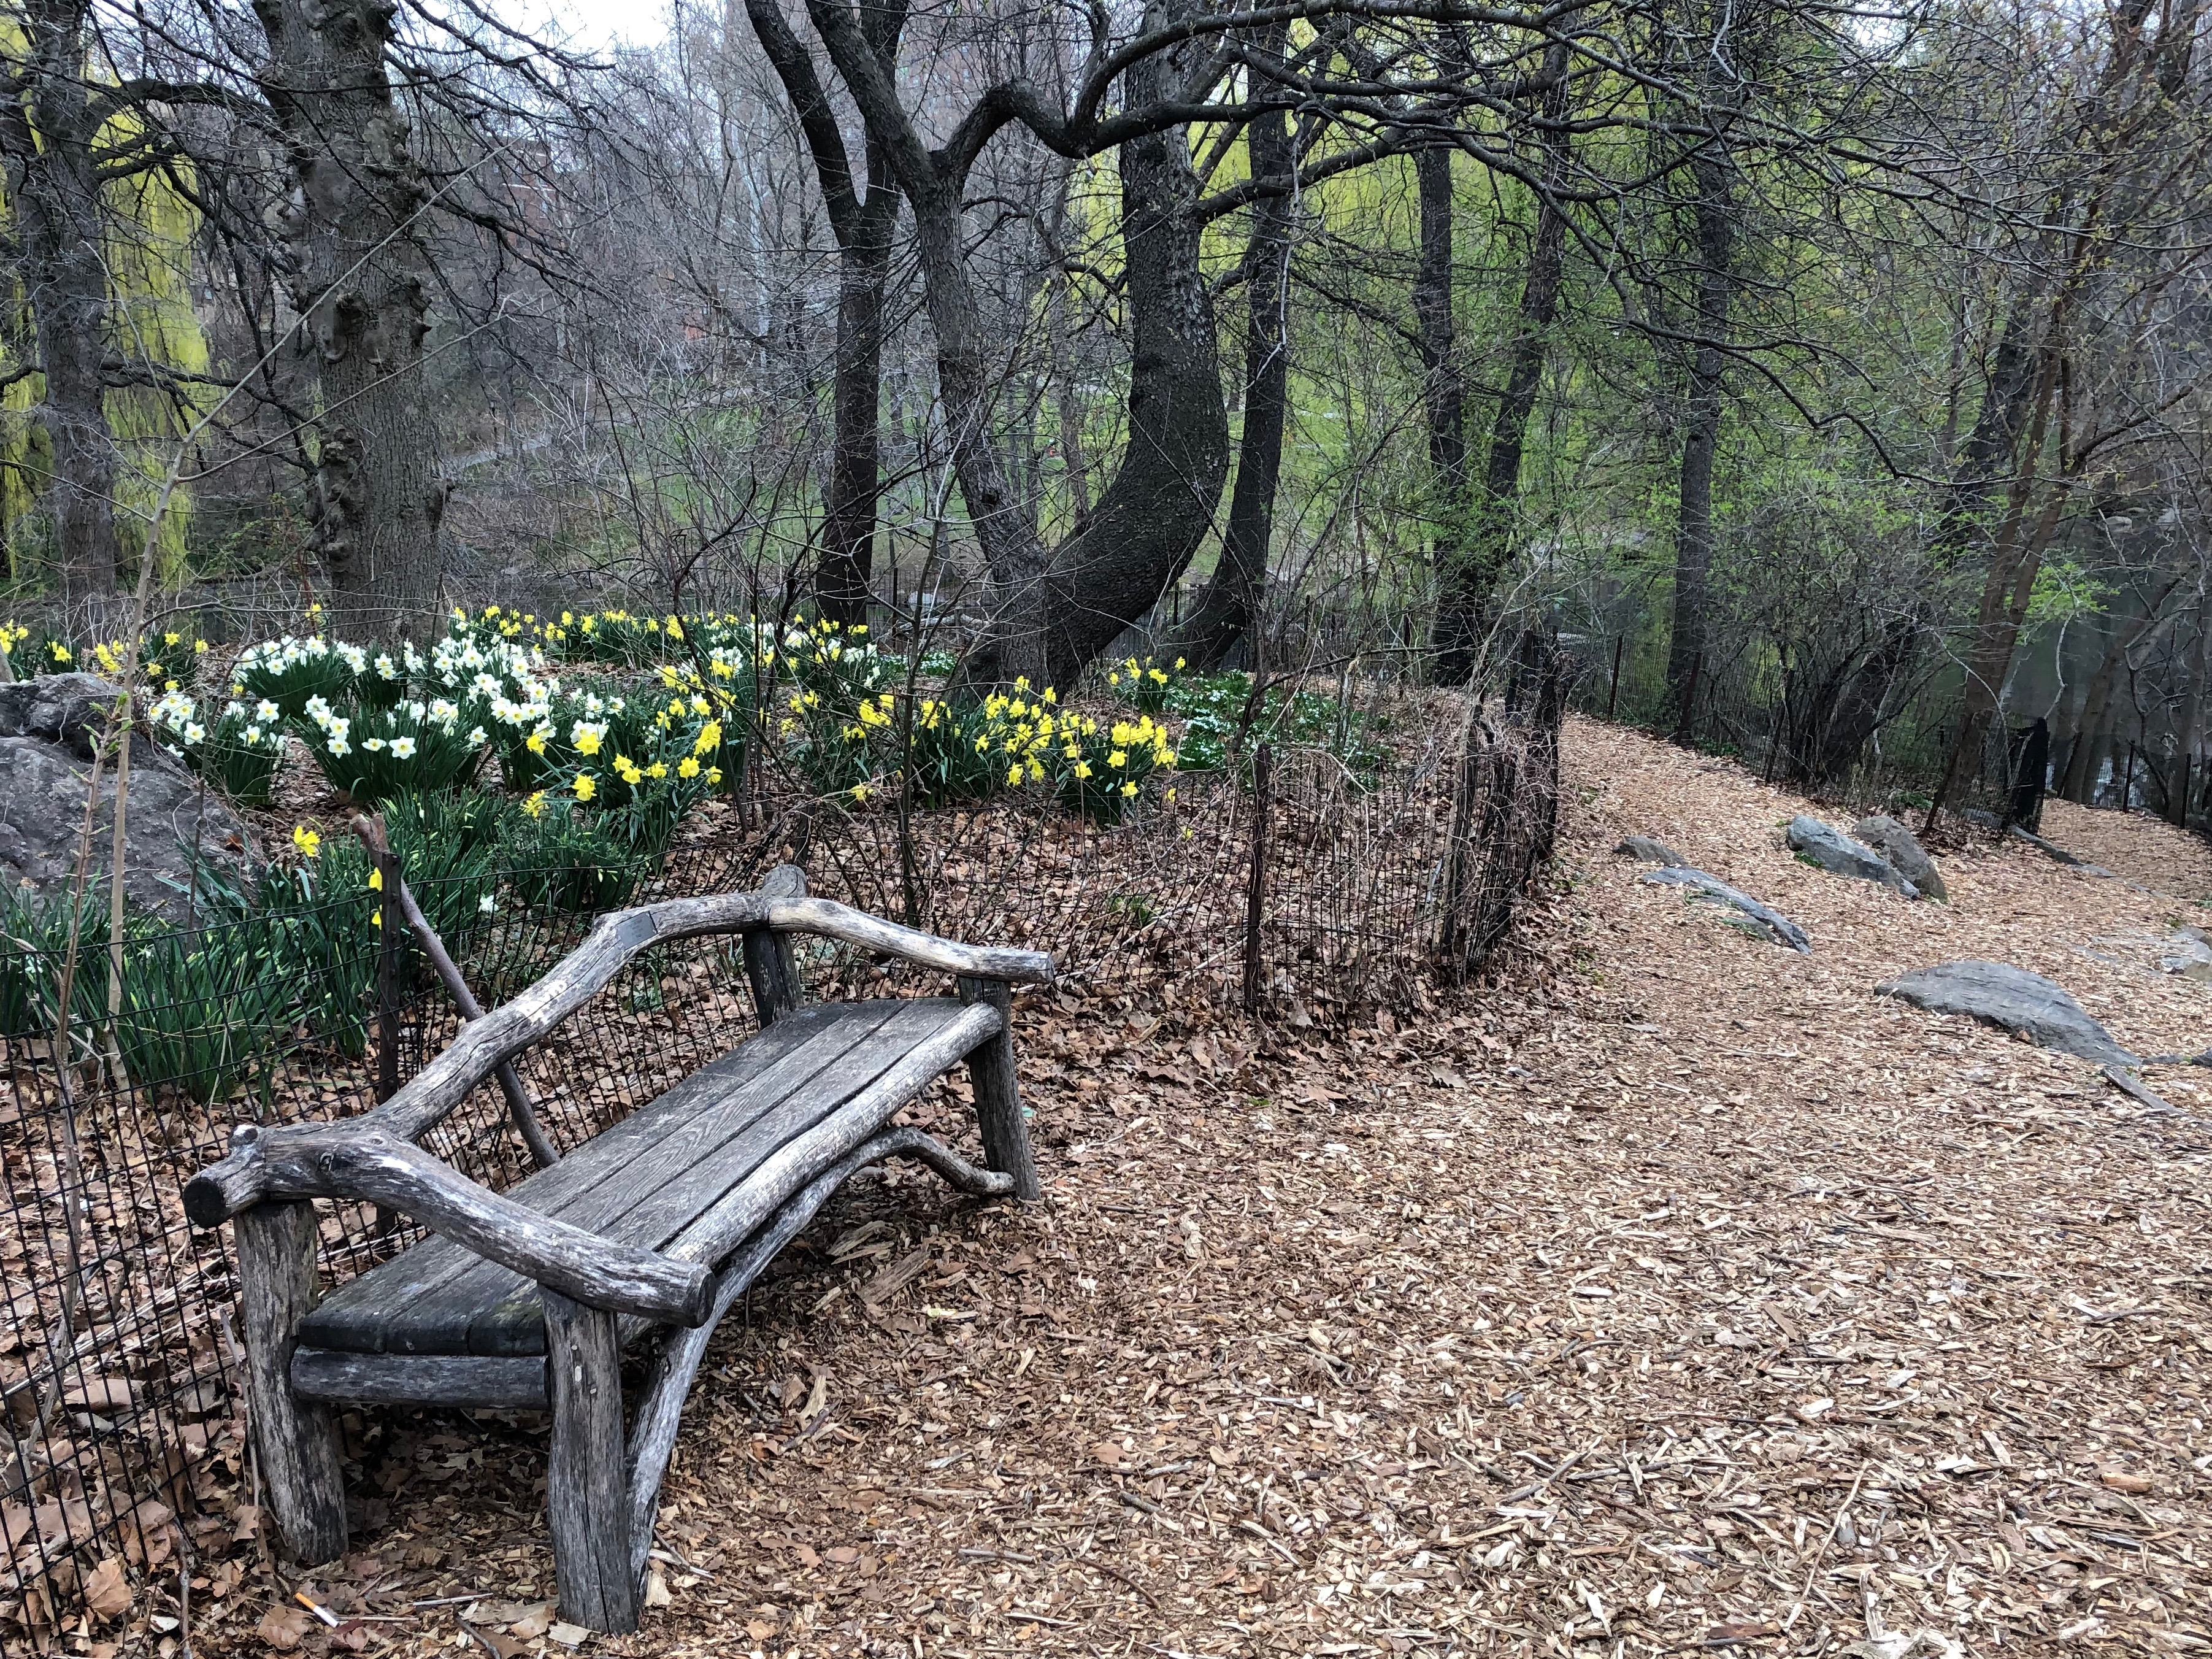 041119-daffodils-and-bench